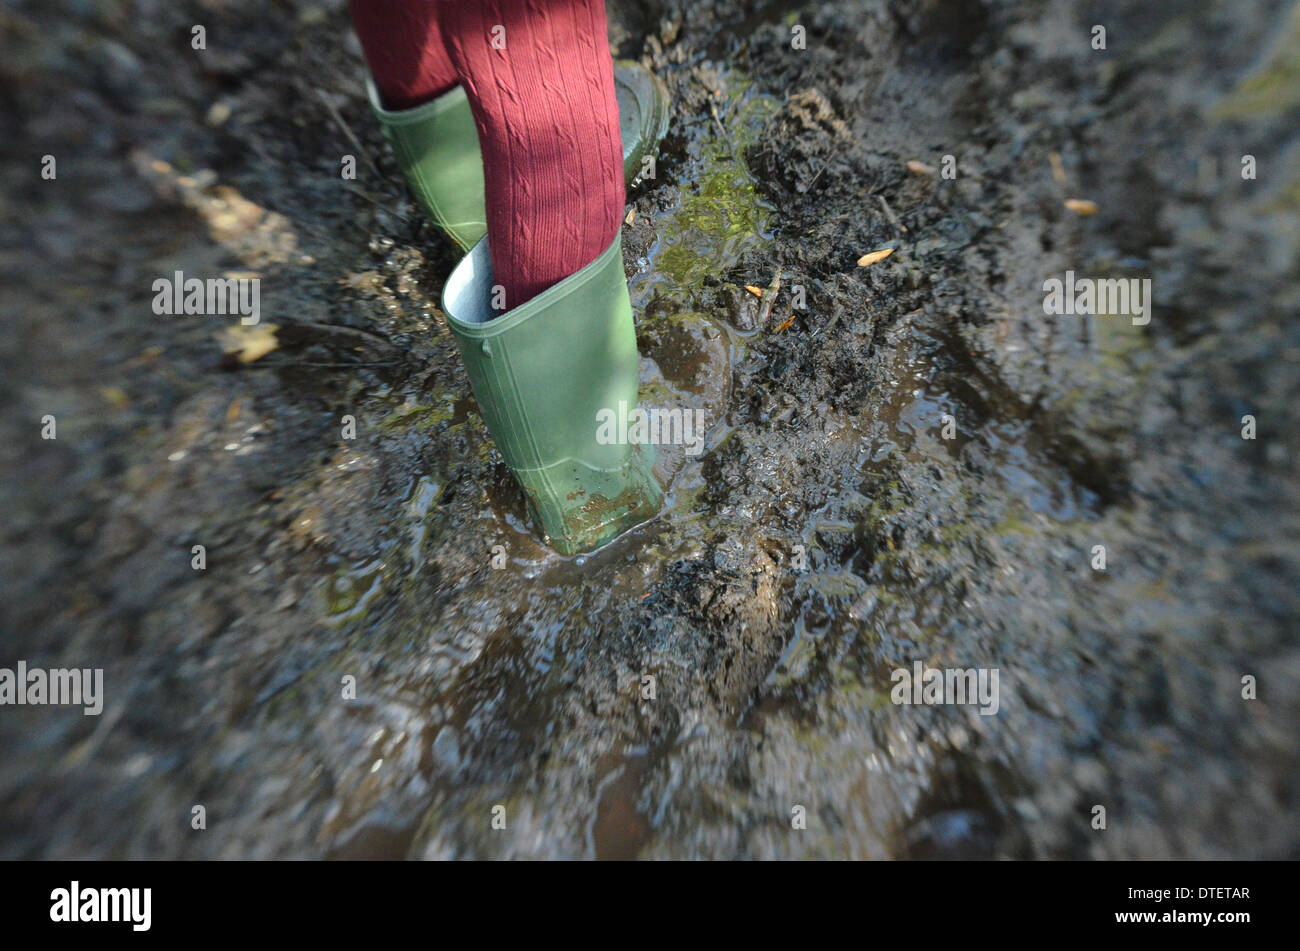 girls-feet-in-green-wellingtons-playing-